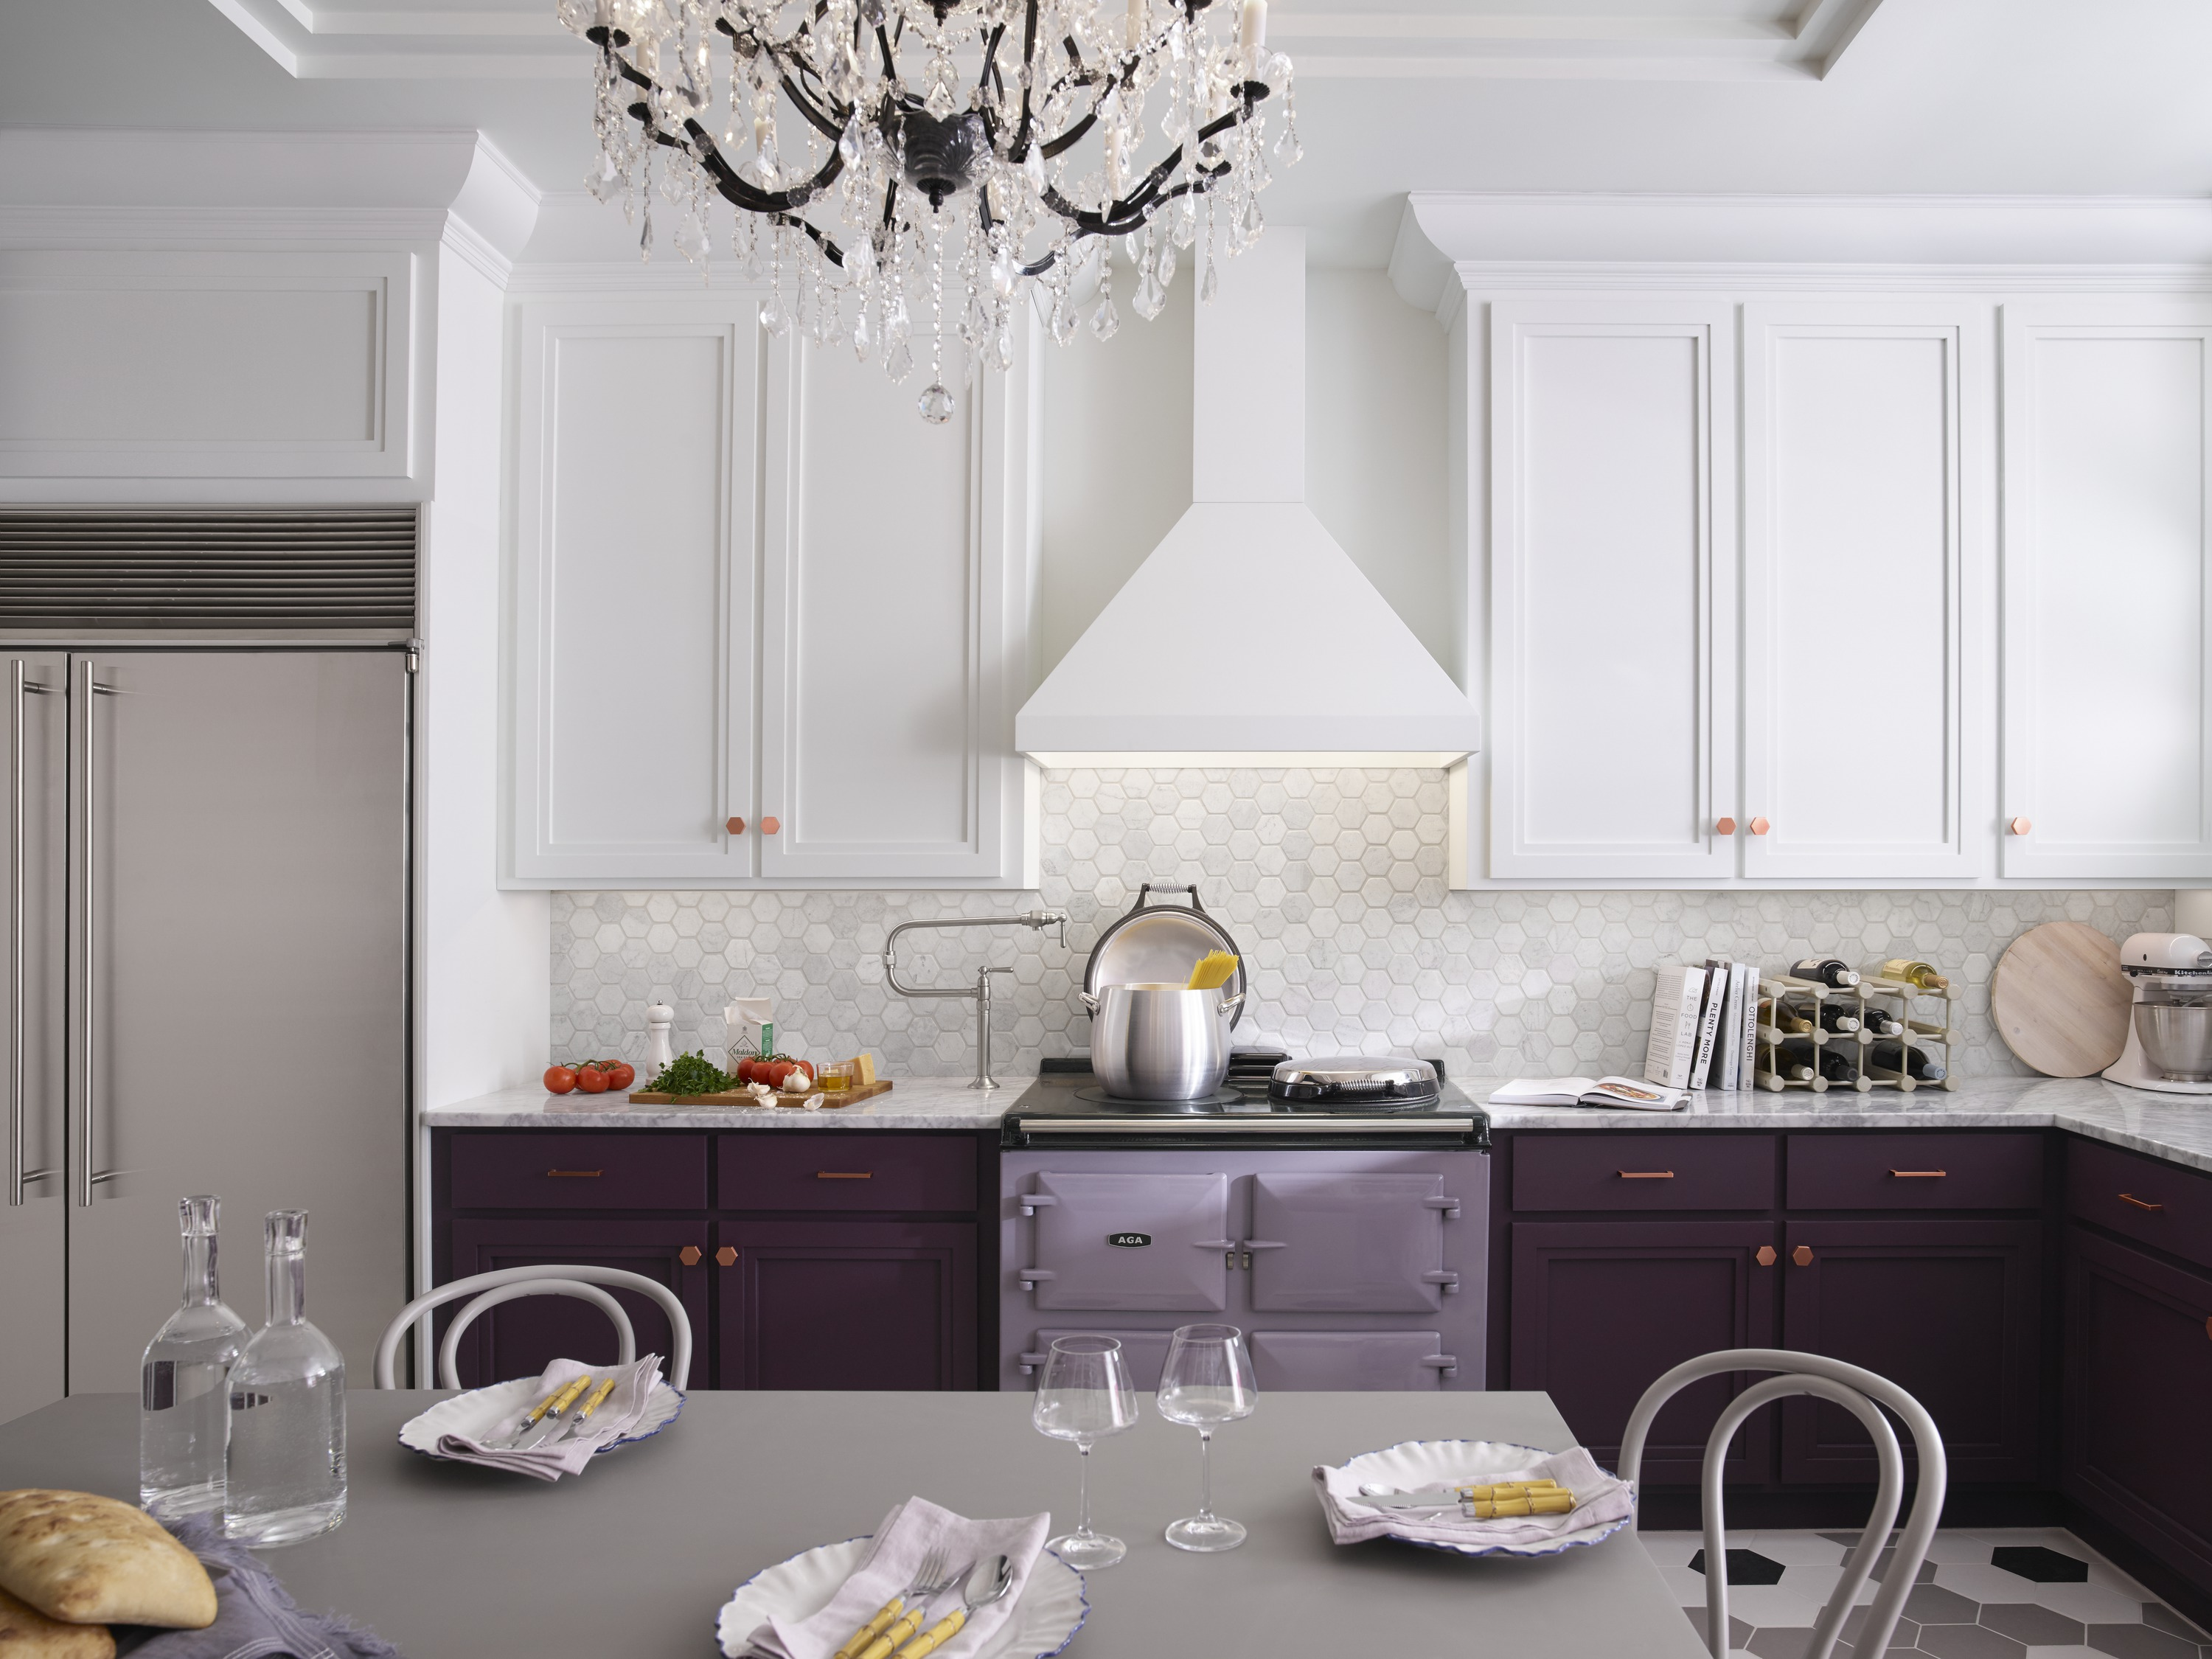 HiRise™ pot filler     Solid colors on the wall, range hood and cabinets balance the patterns of the wall and floor tiles.